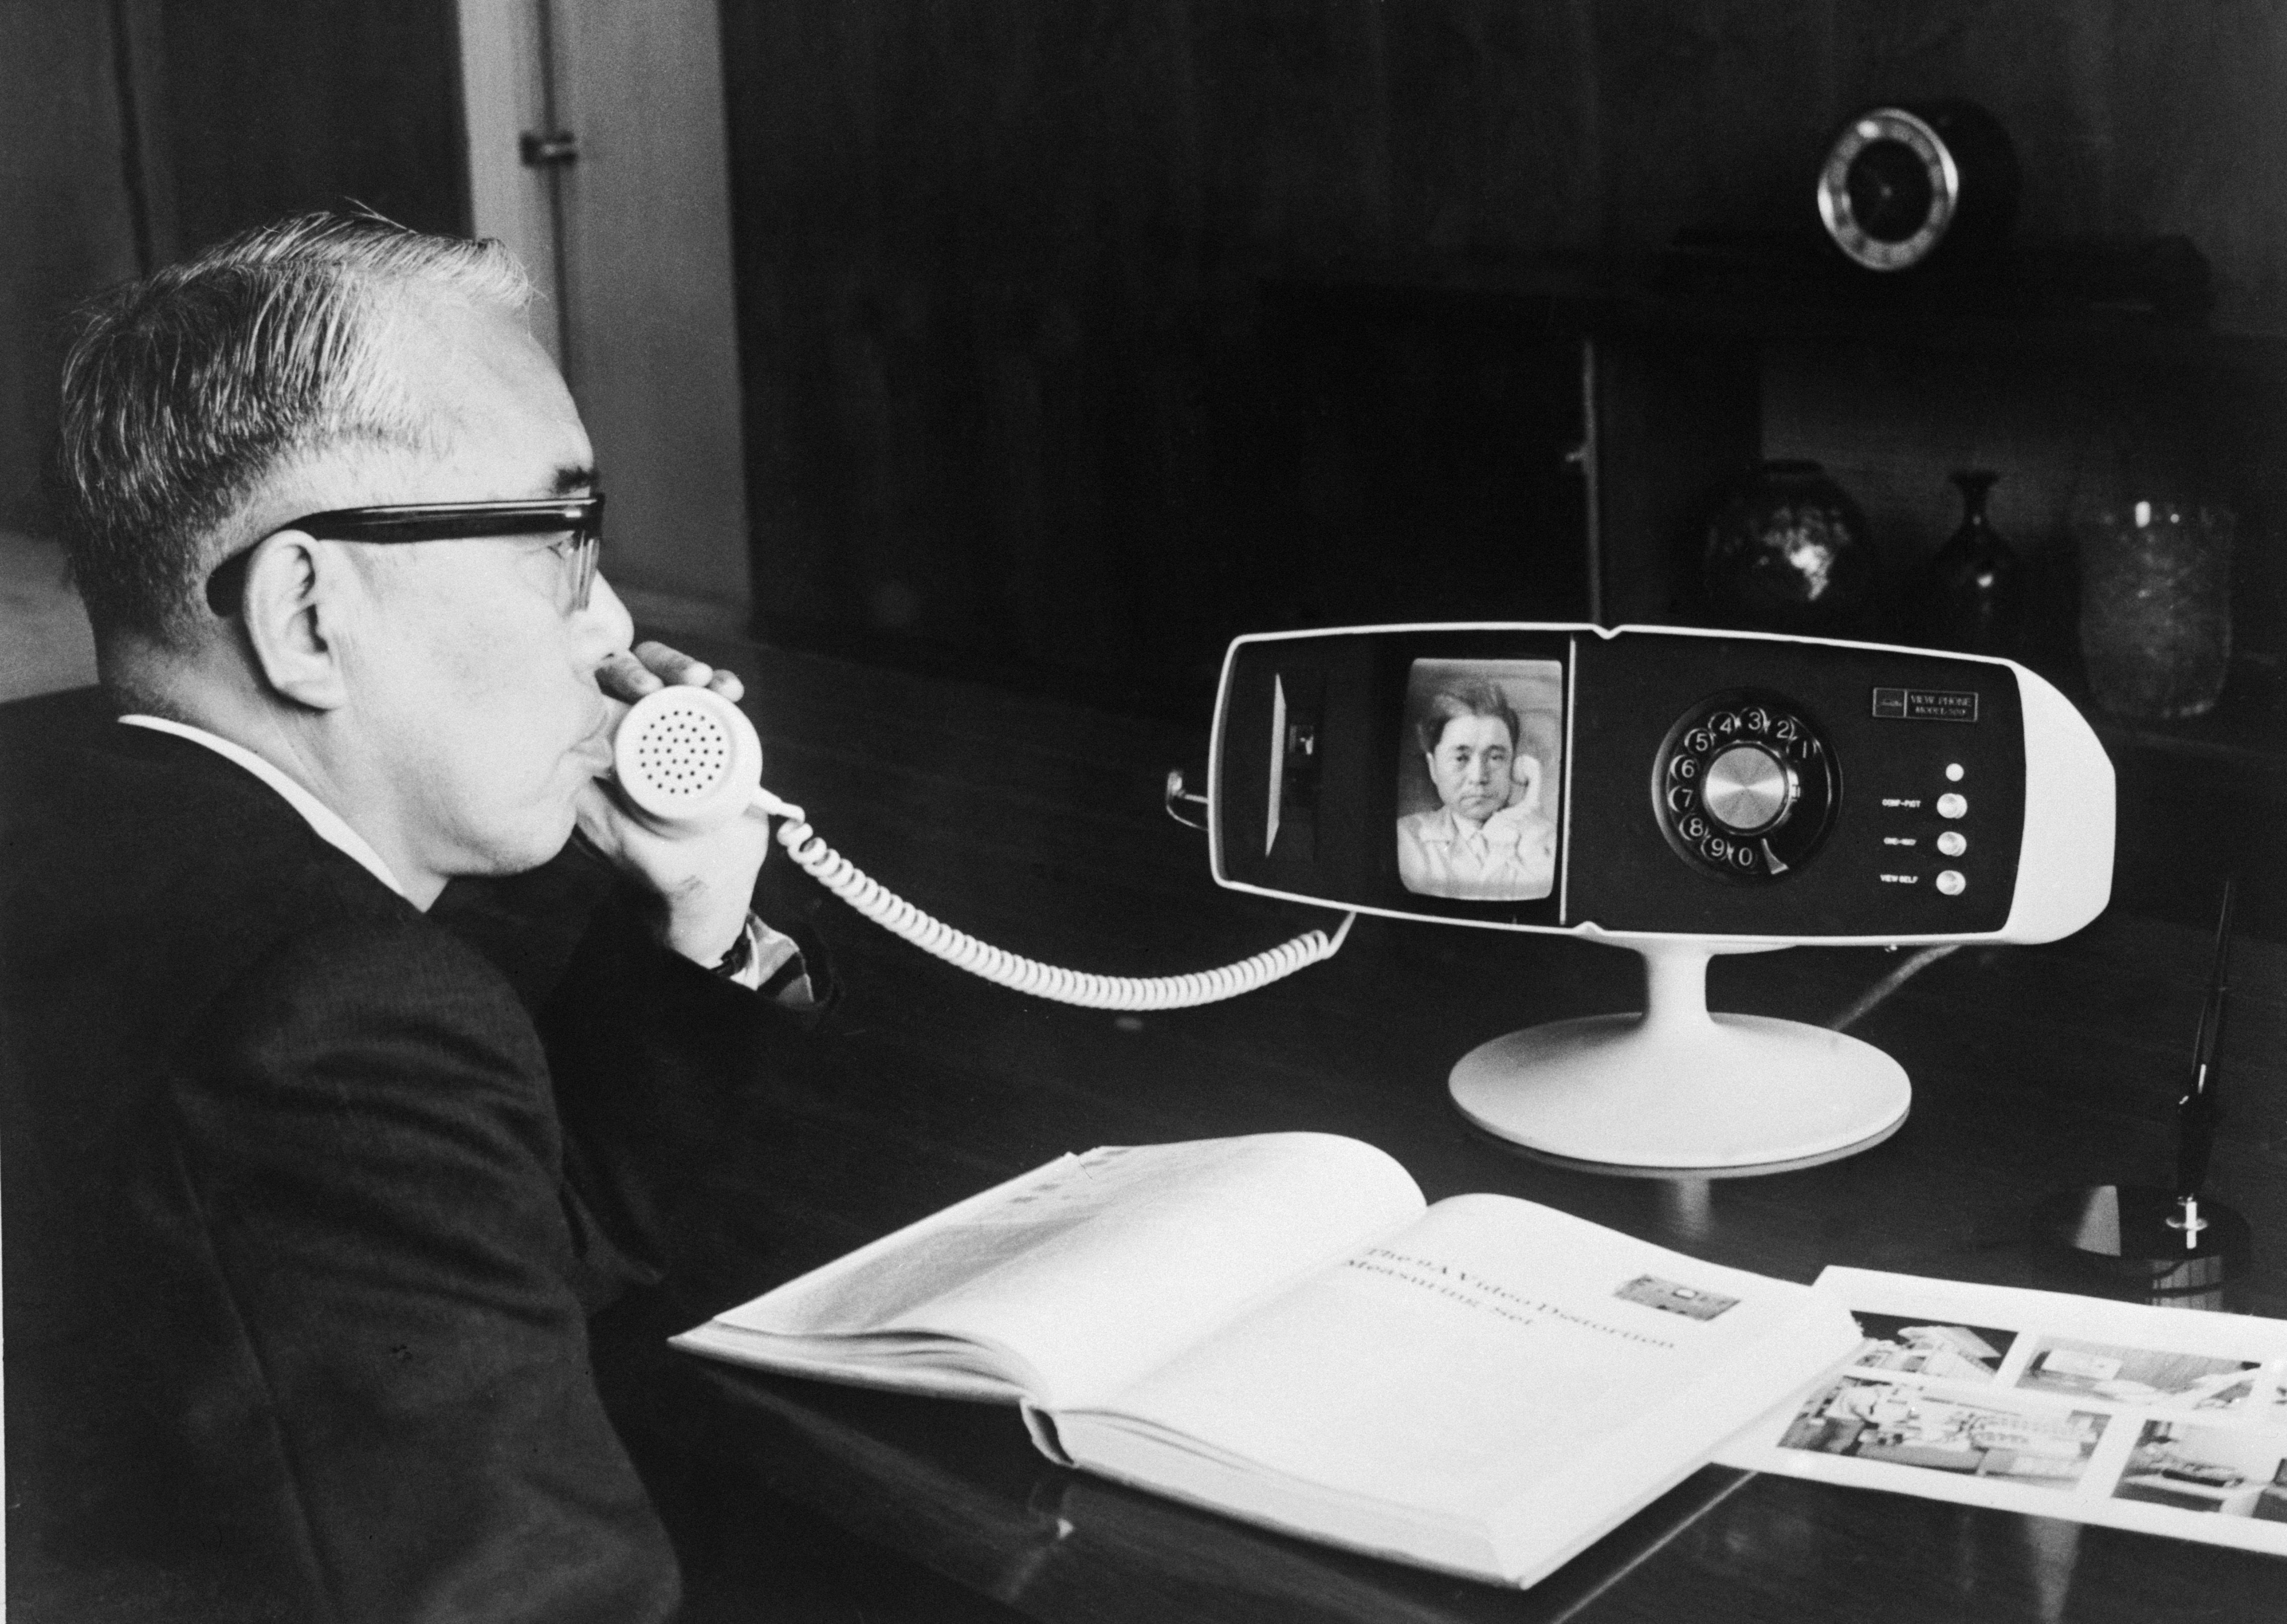 30 Photos That Show How Drastically Telephones Have Changed Over Time